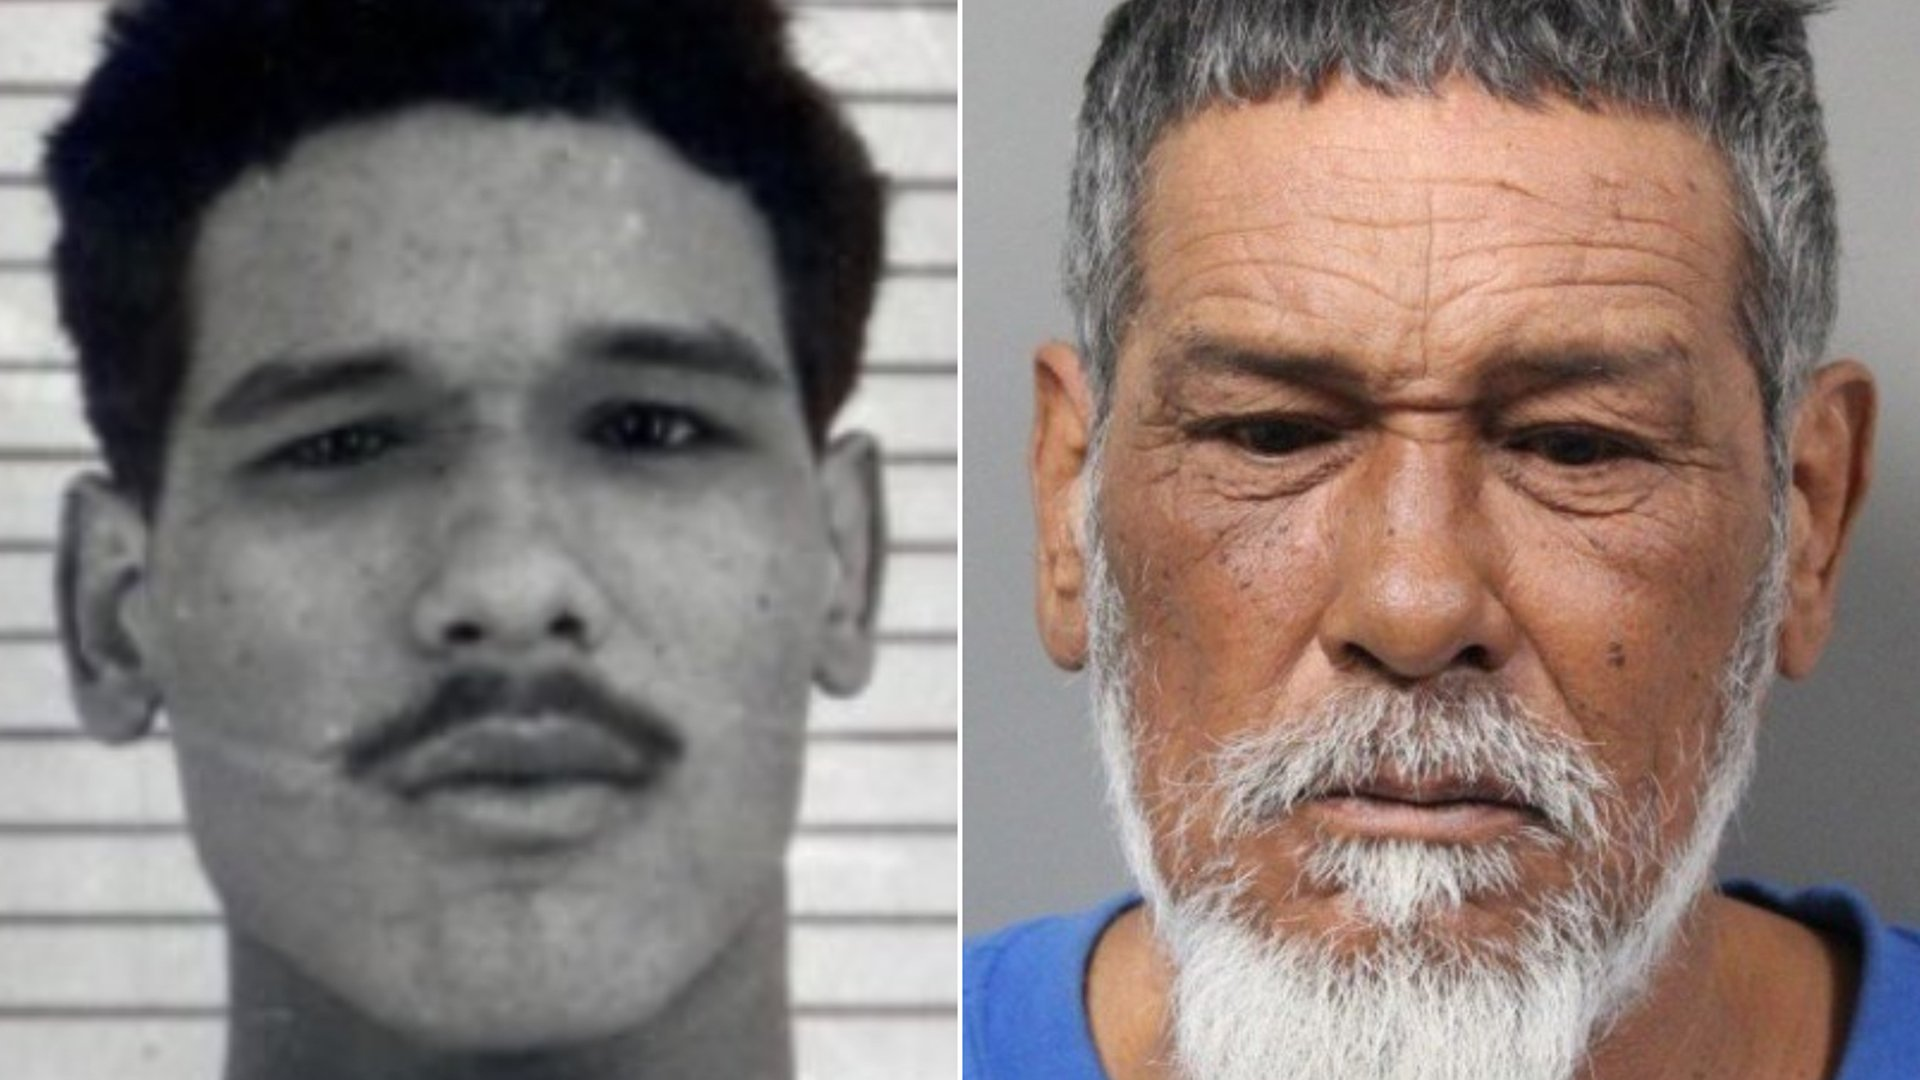 Seen are Jose Romero's booking photos from 1979, left, and 2020. (Credit: South Carolina Department of Corrections)